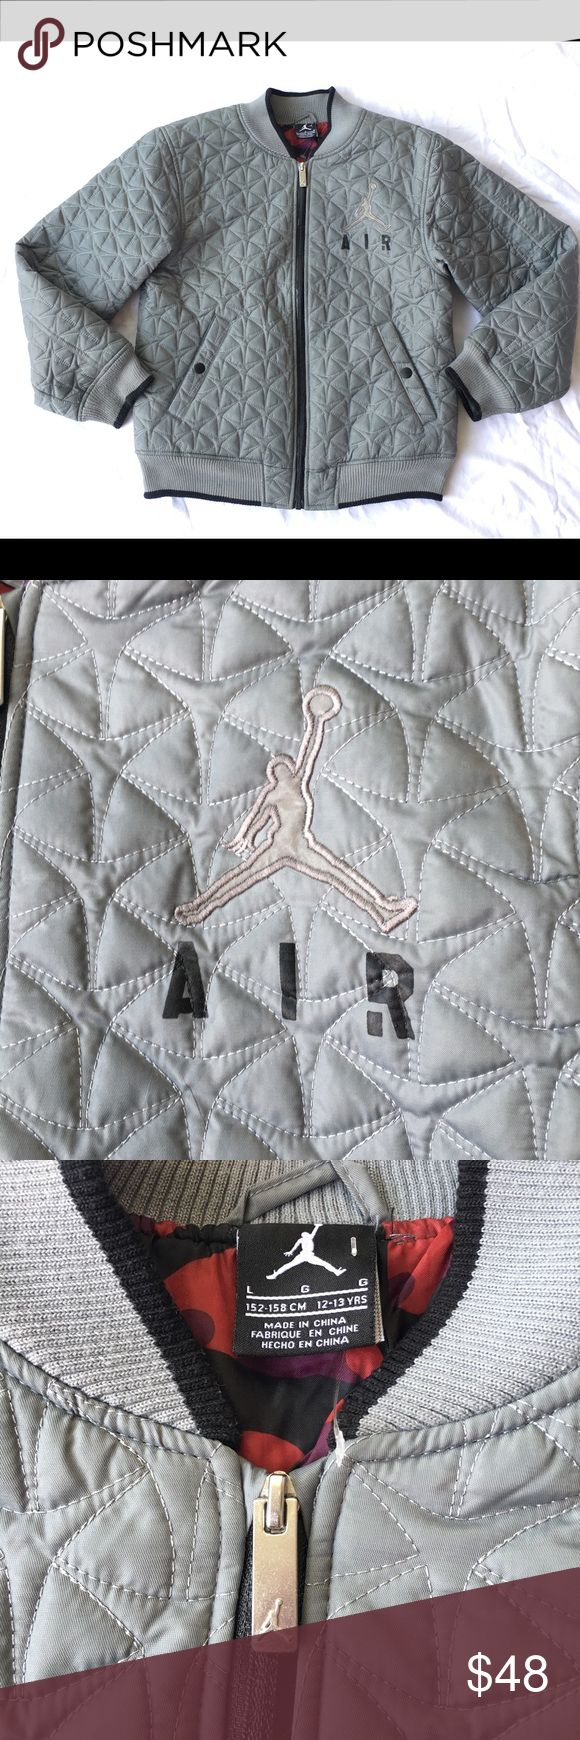 NIKE AIR JORDAN FLIGHT CLUB QUILTED JACKET KIDS NIKE AIR JORDAN FLIGHT CLUB QUILTED 3M JACKET GREY KIDS LARGE 12-13 Jordan Jackets & Coats